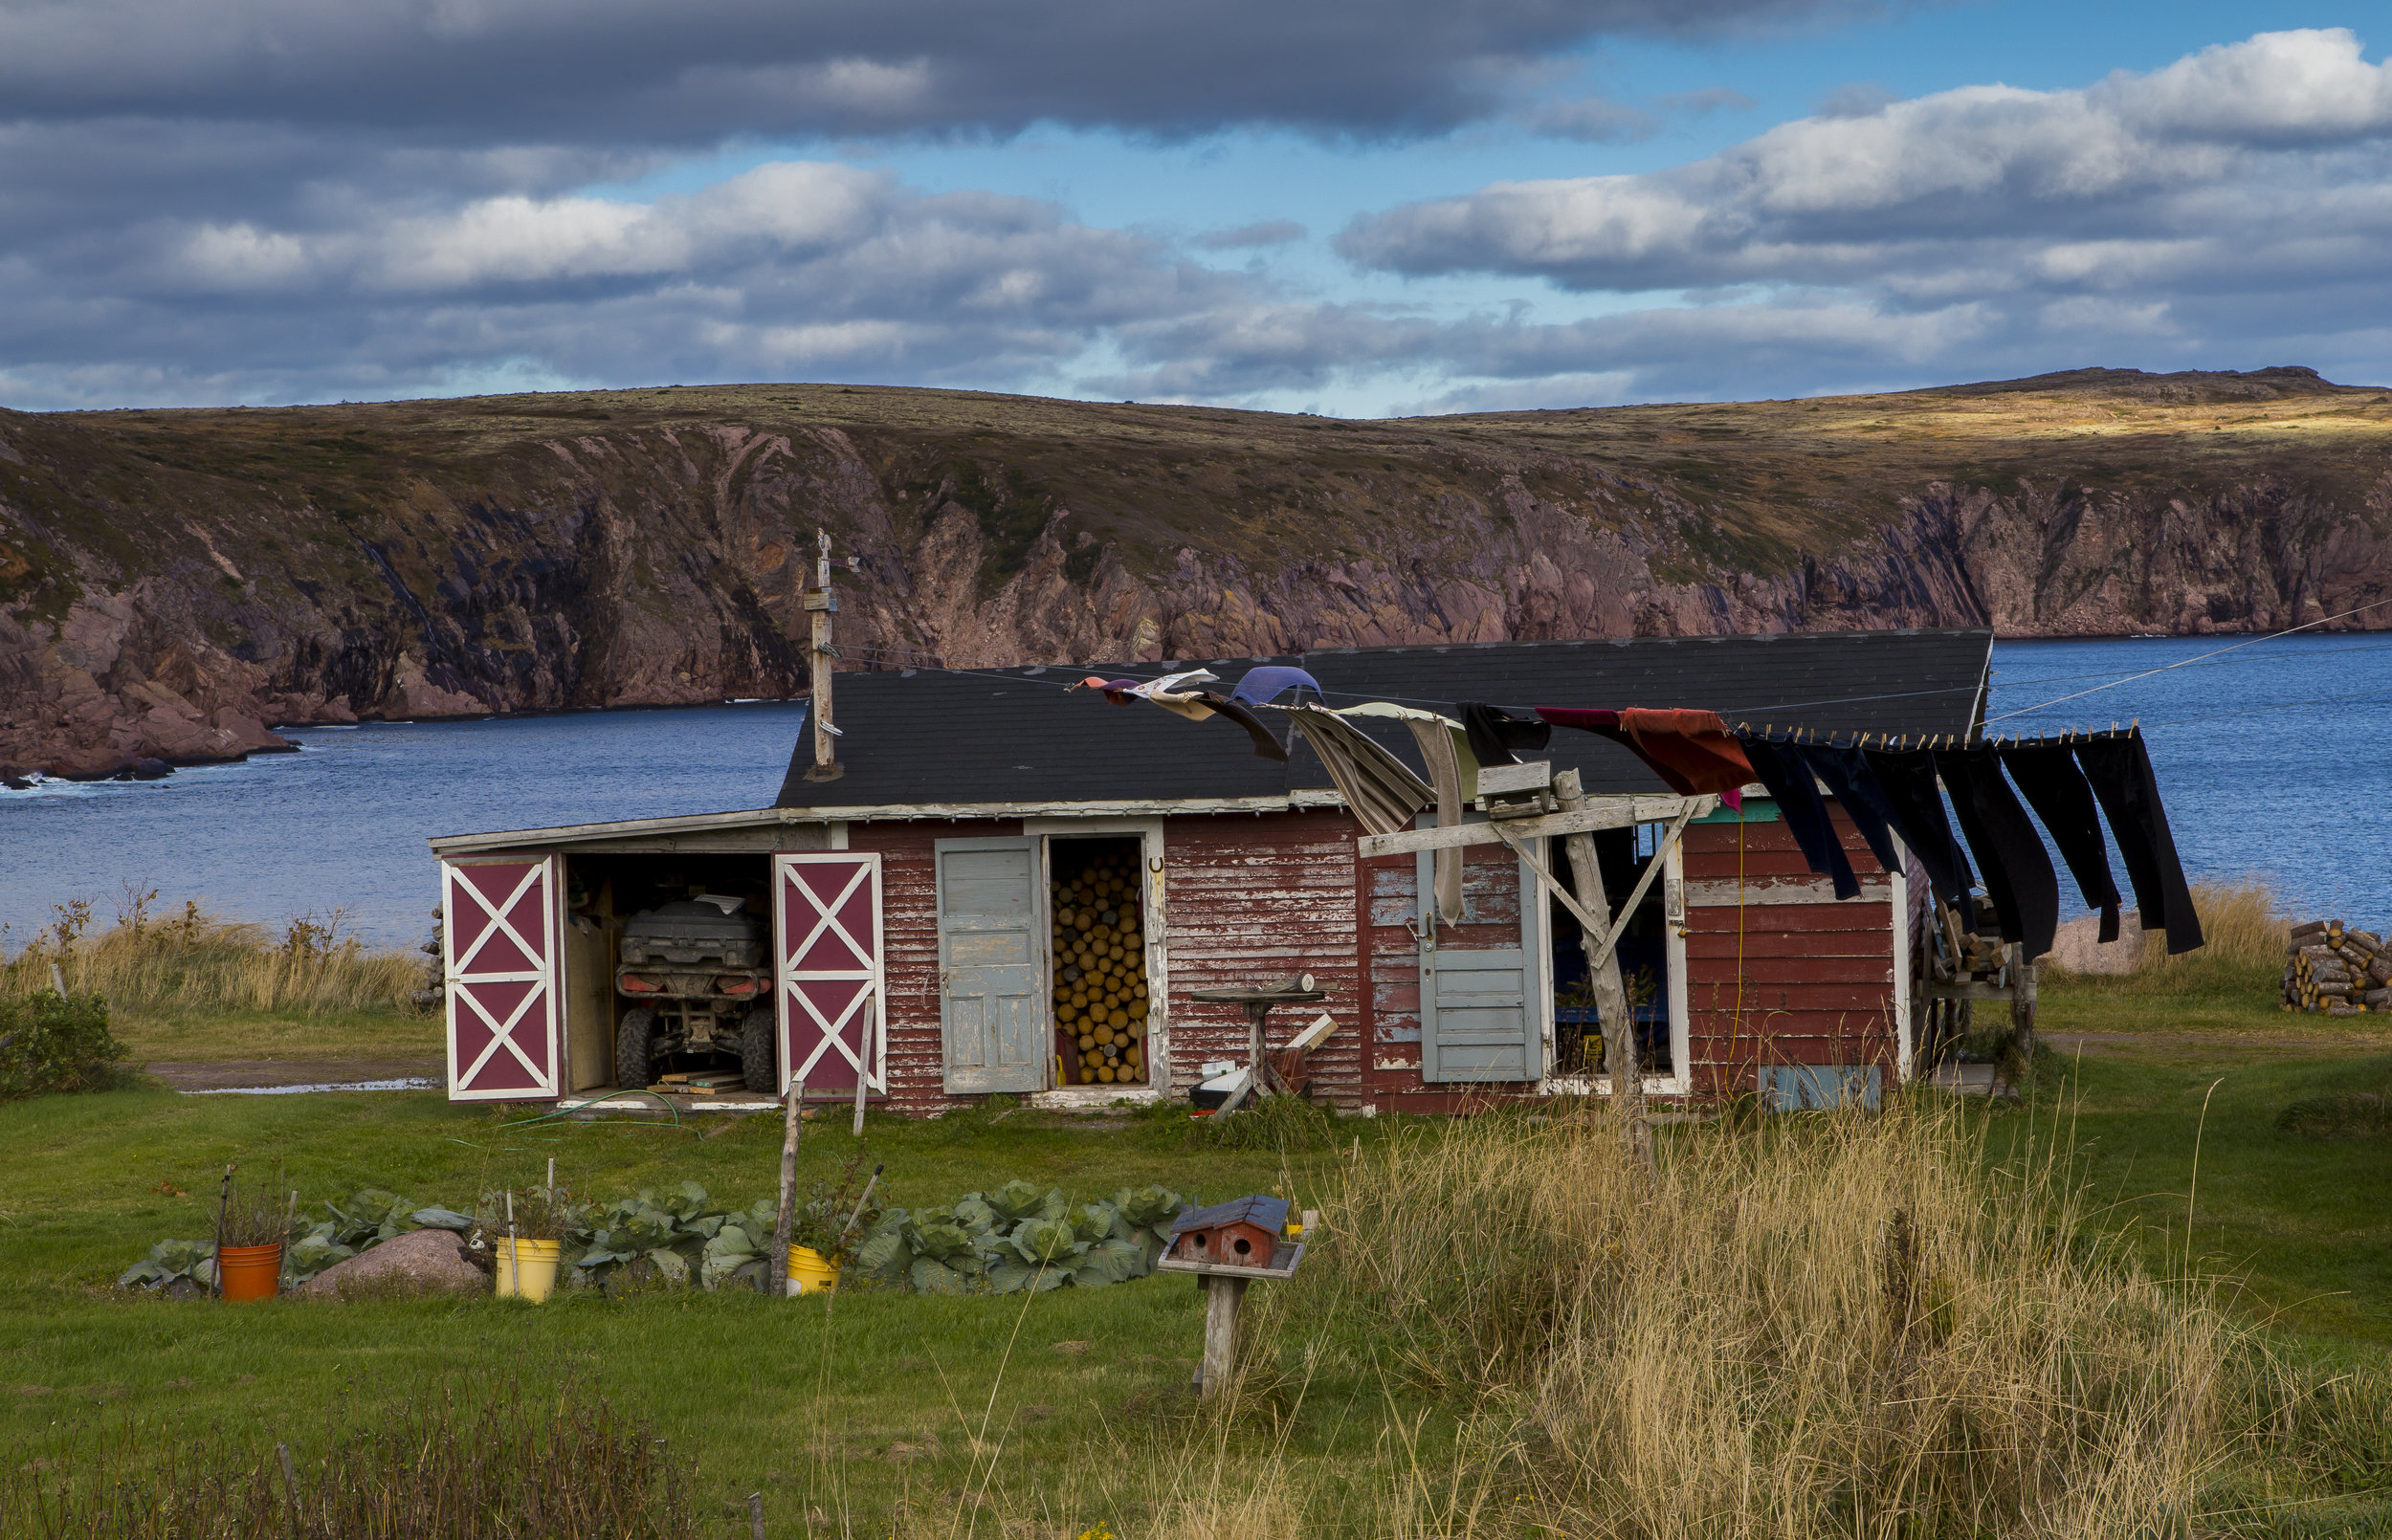 Village at the End of the Road - A remote Newfoundland outport faces extinction. Once a vibrant community of independent fishermen, Bay de Verde was helpless in the face of international fishing trawlers and government fisheries mismanagement.